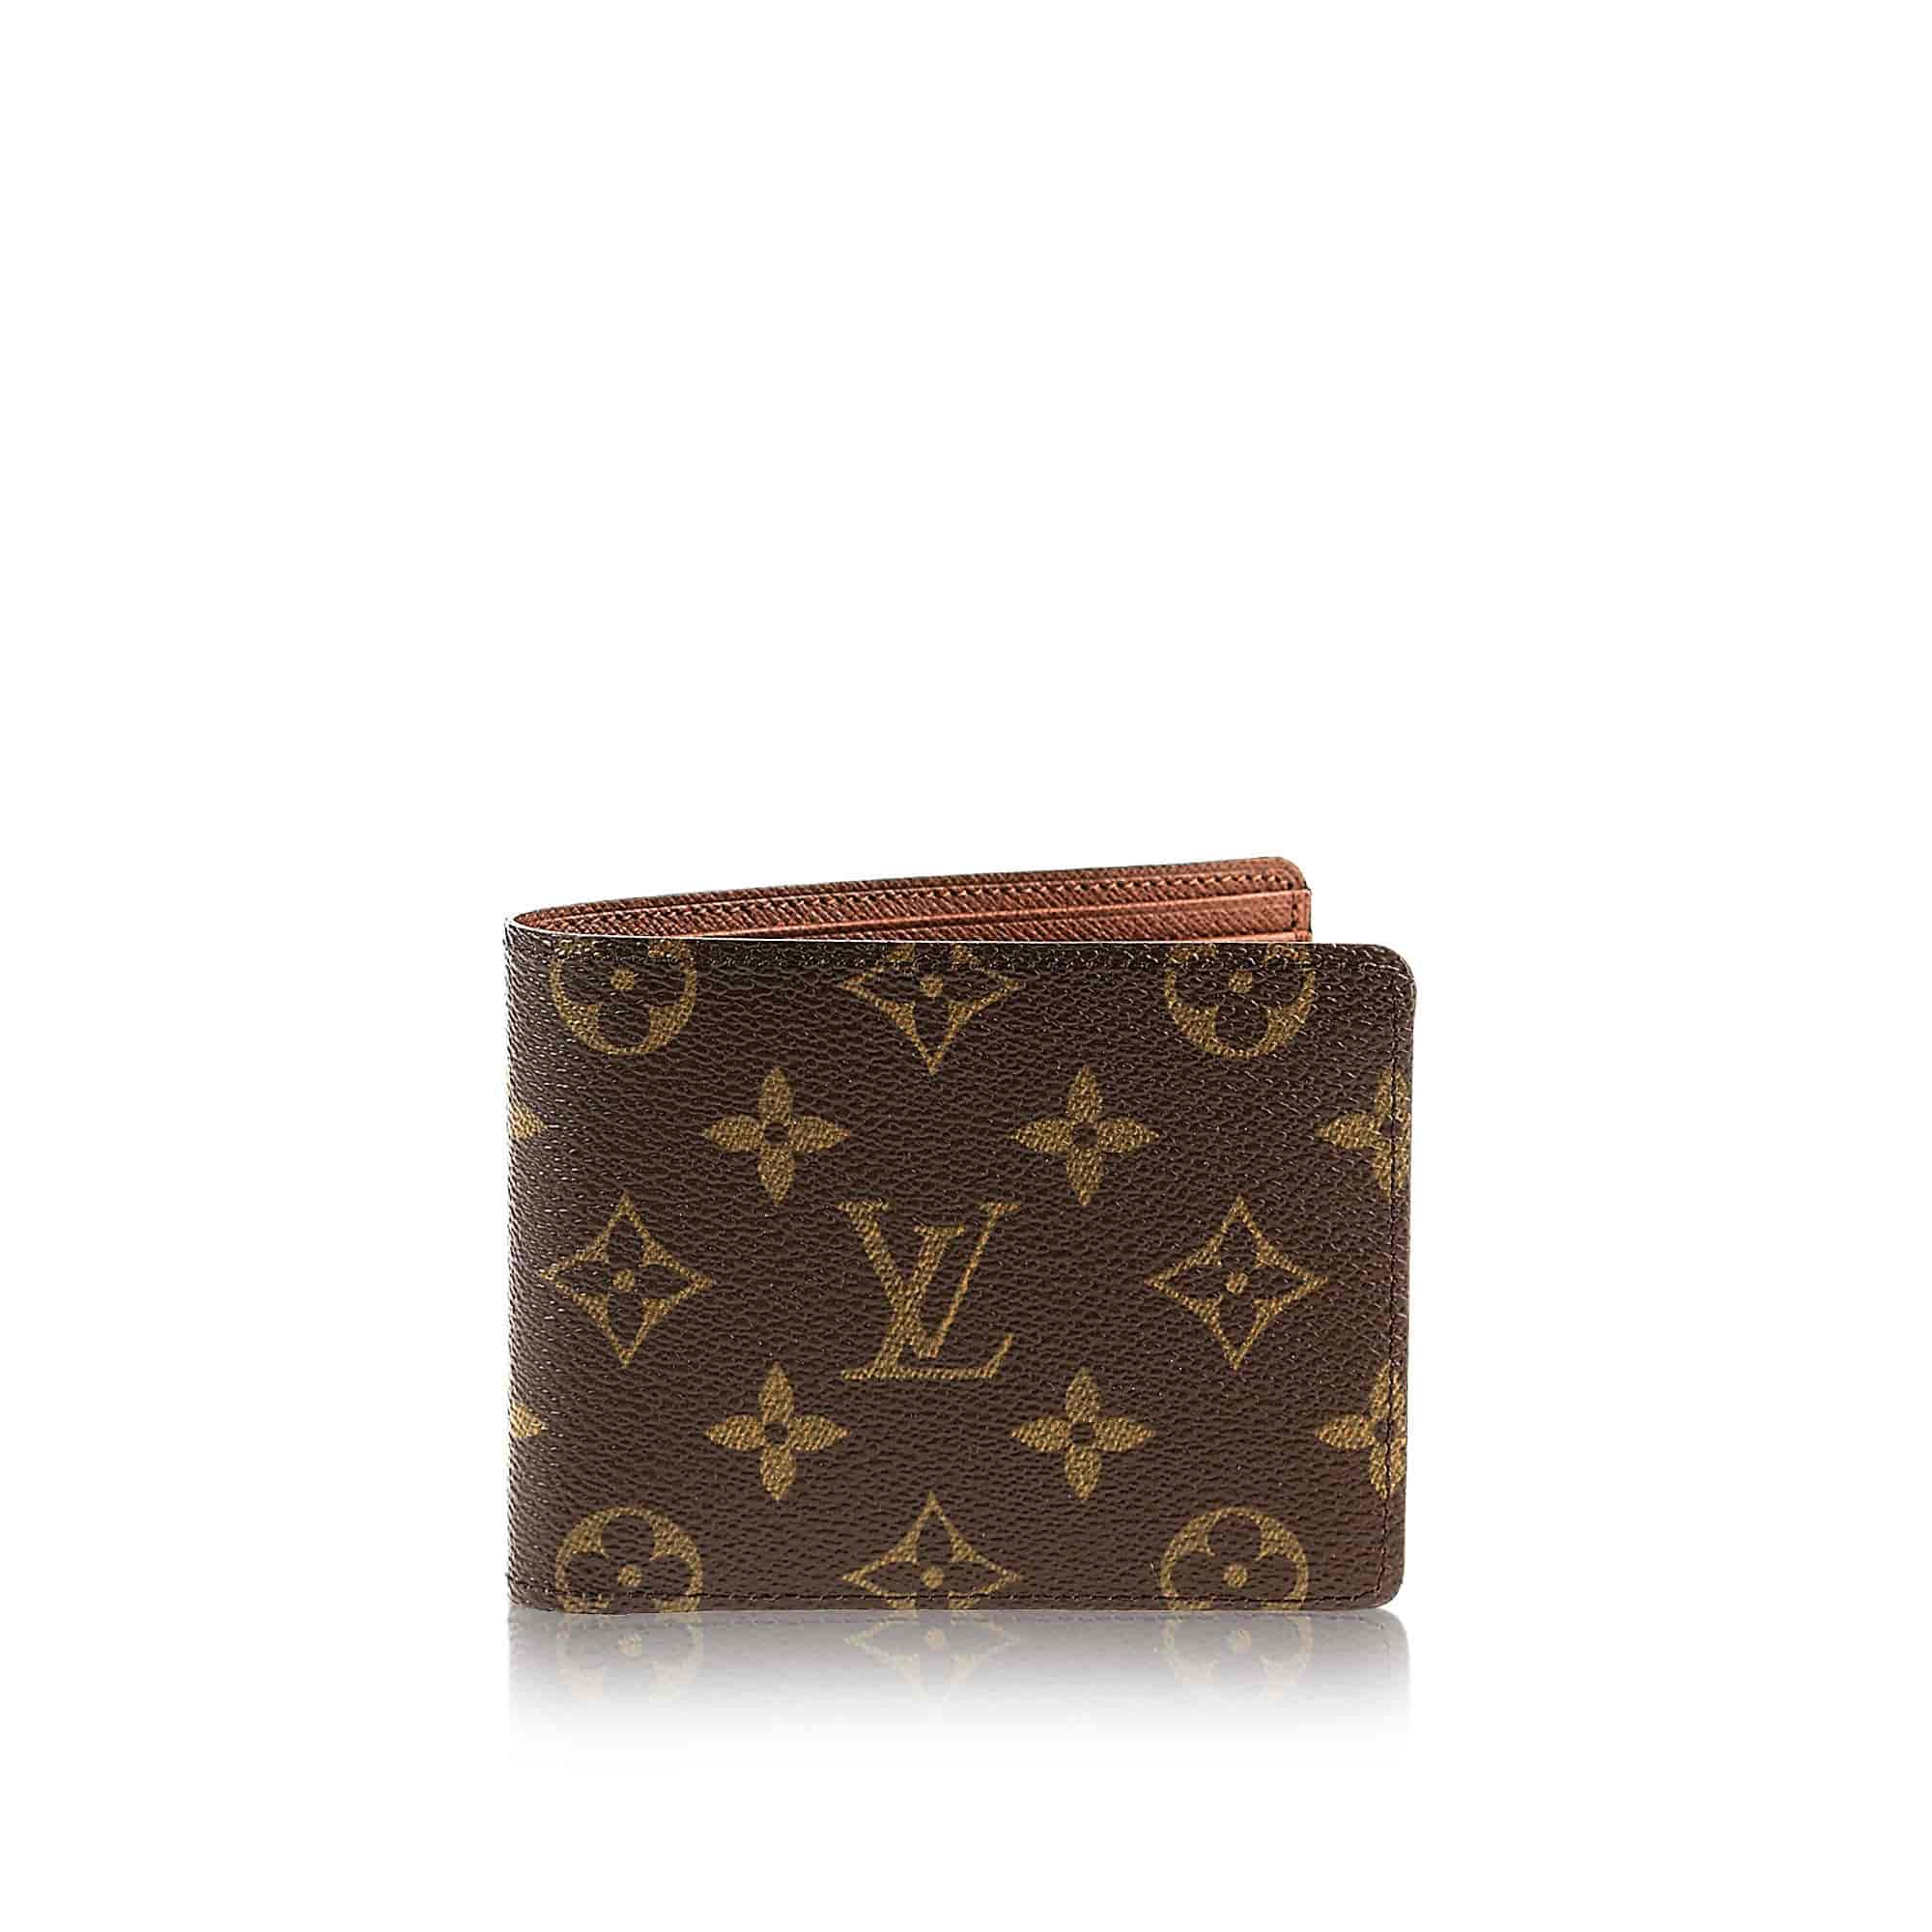 Buy Louis Vuitton Men Multiple Wallet Monogram Canvas  M60895 ... 5362618ac8